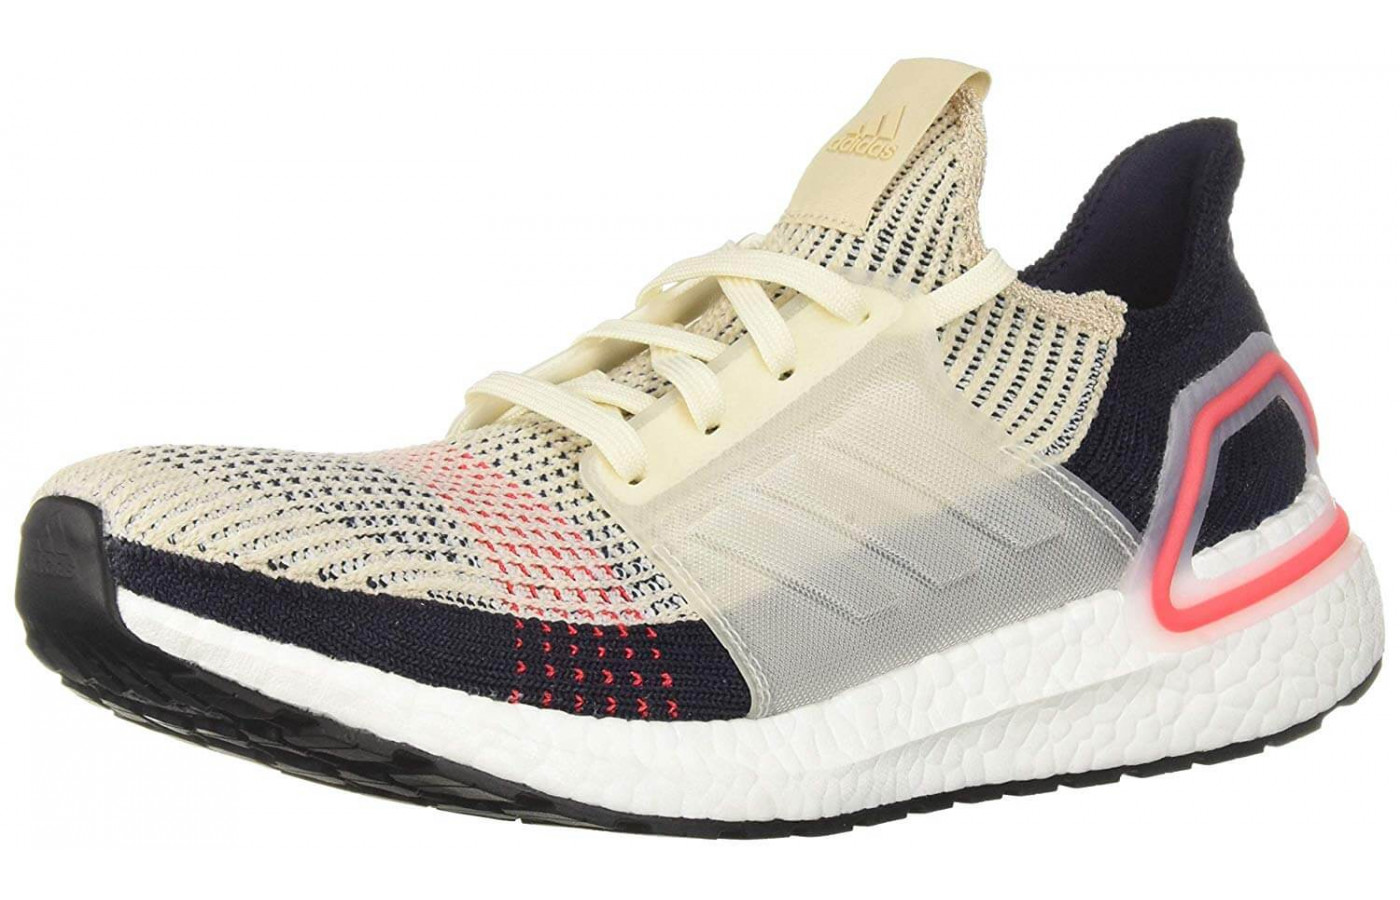 first rate autumn shoes fantastic savings Adidas Ultraboost 19